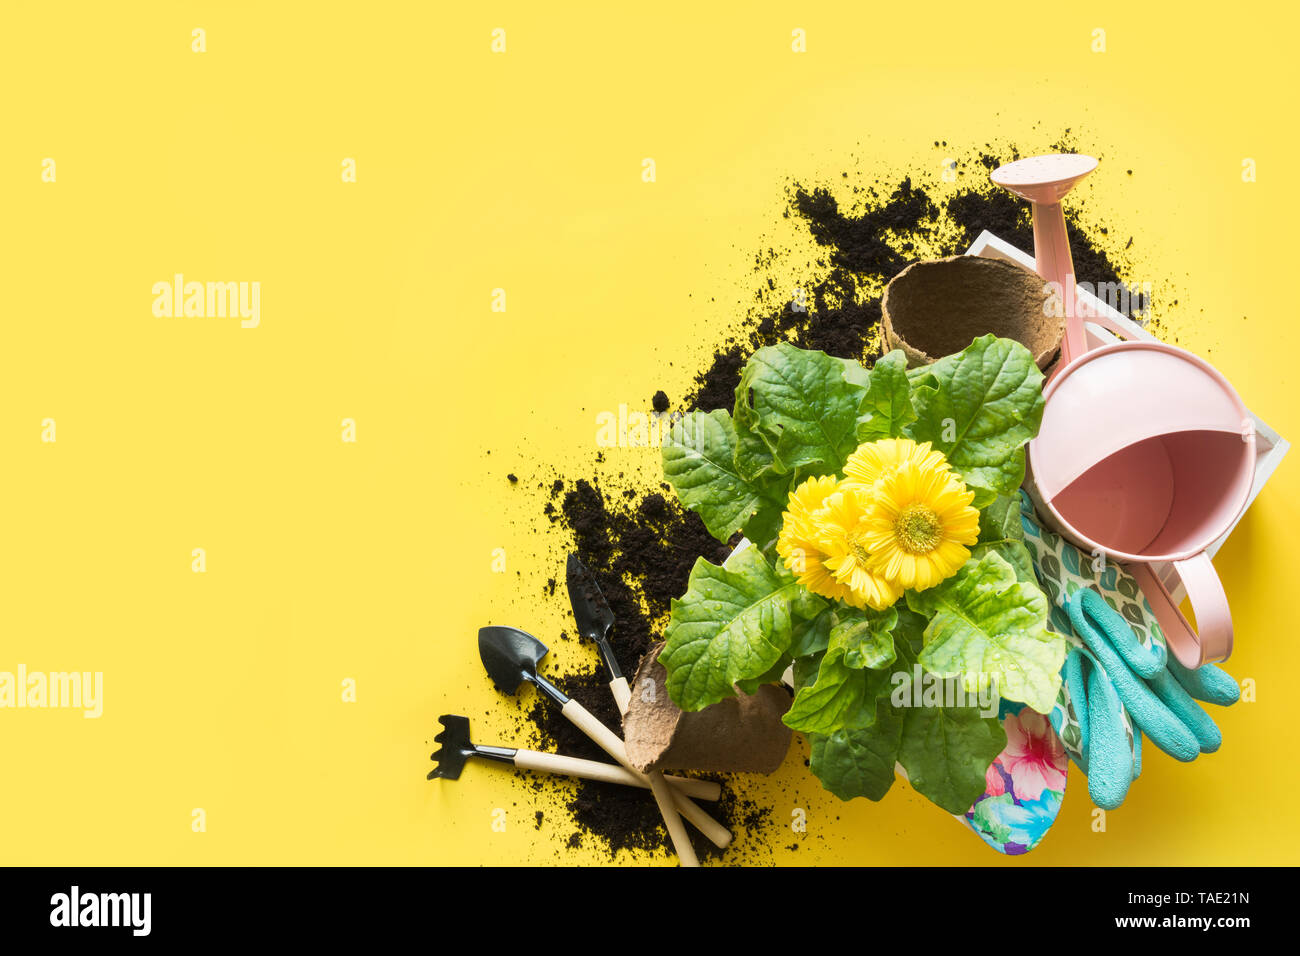 Gardening background with gerbera, tolls and flowers plant in box on yellow background. View from above. Space for text. - Stock Image